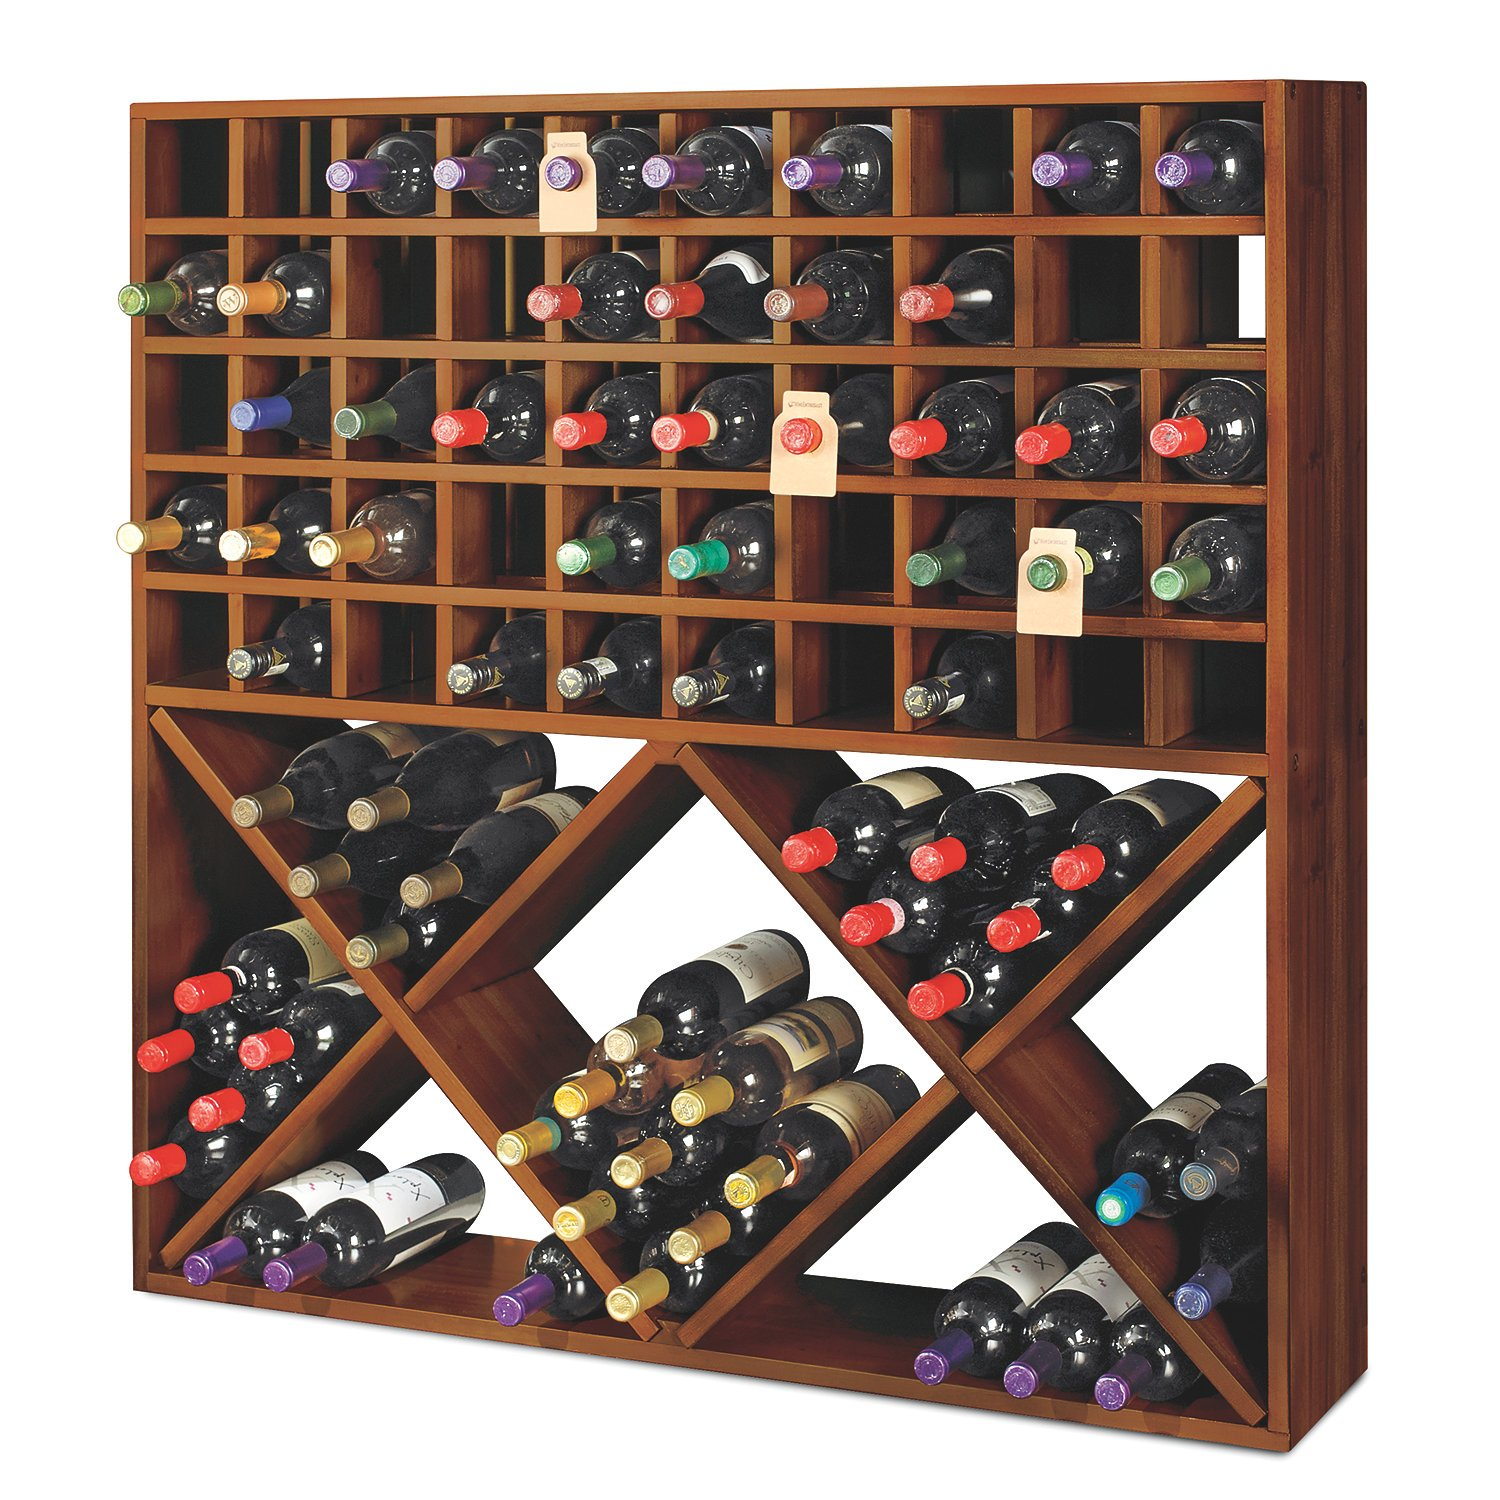 Jumbo Bin Grid 100 Bottle Wine Rack - Walnut by Wine Enthusiast